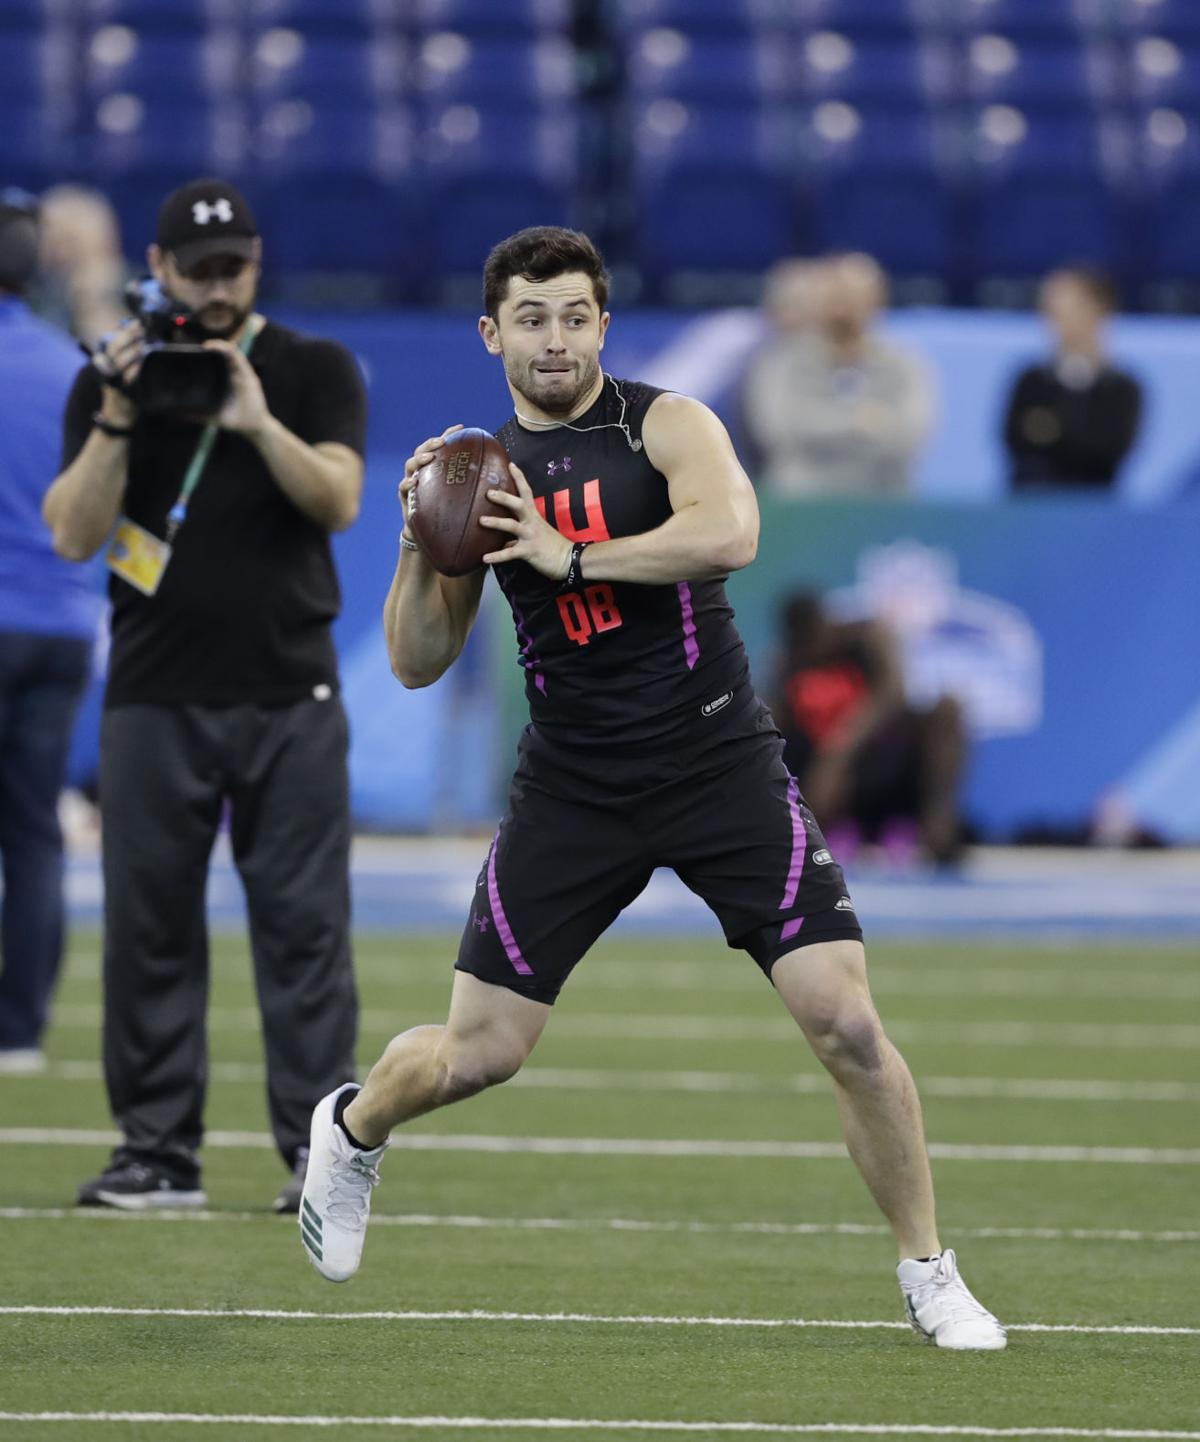 Heisman Trophy Winner Baker Mayfield Saints Set Up